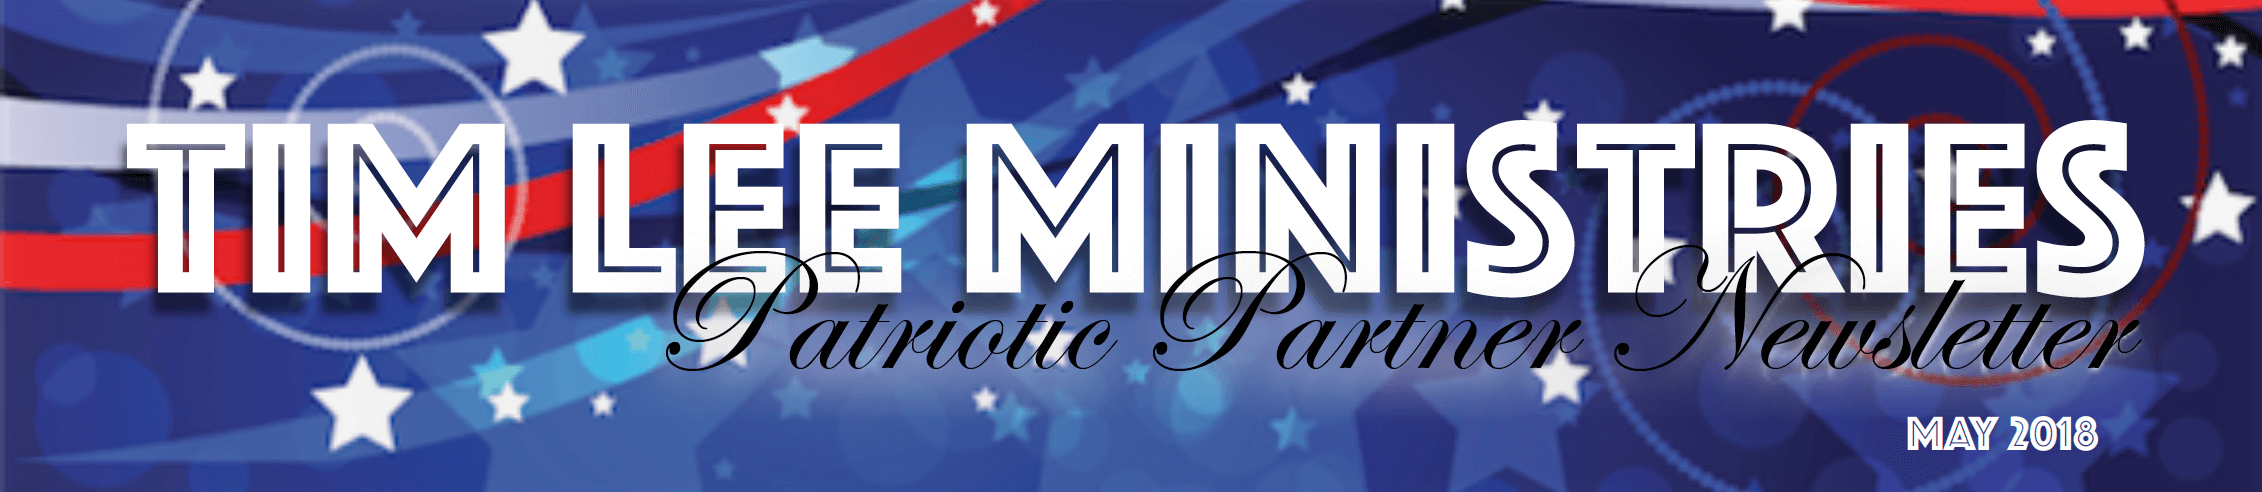 Tim Lee Ministries Patriotic Partners May 2018